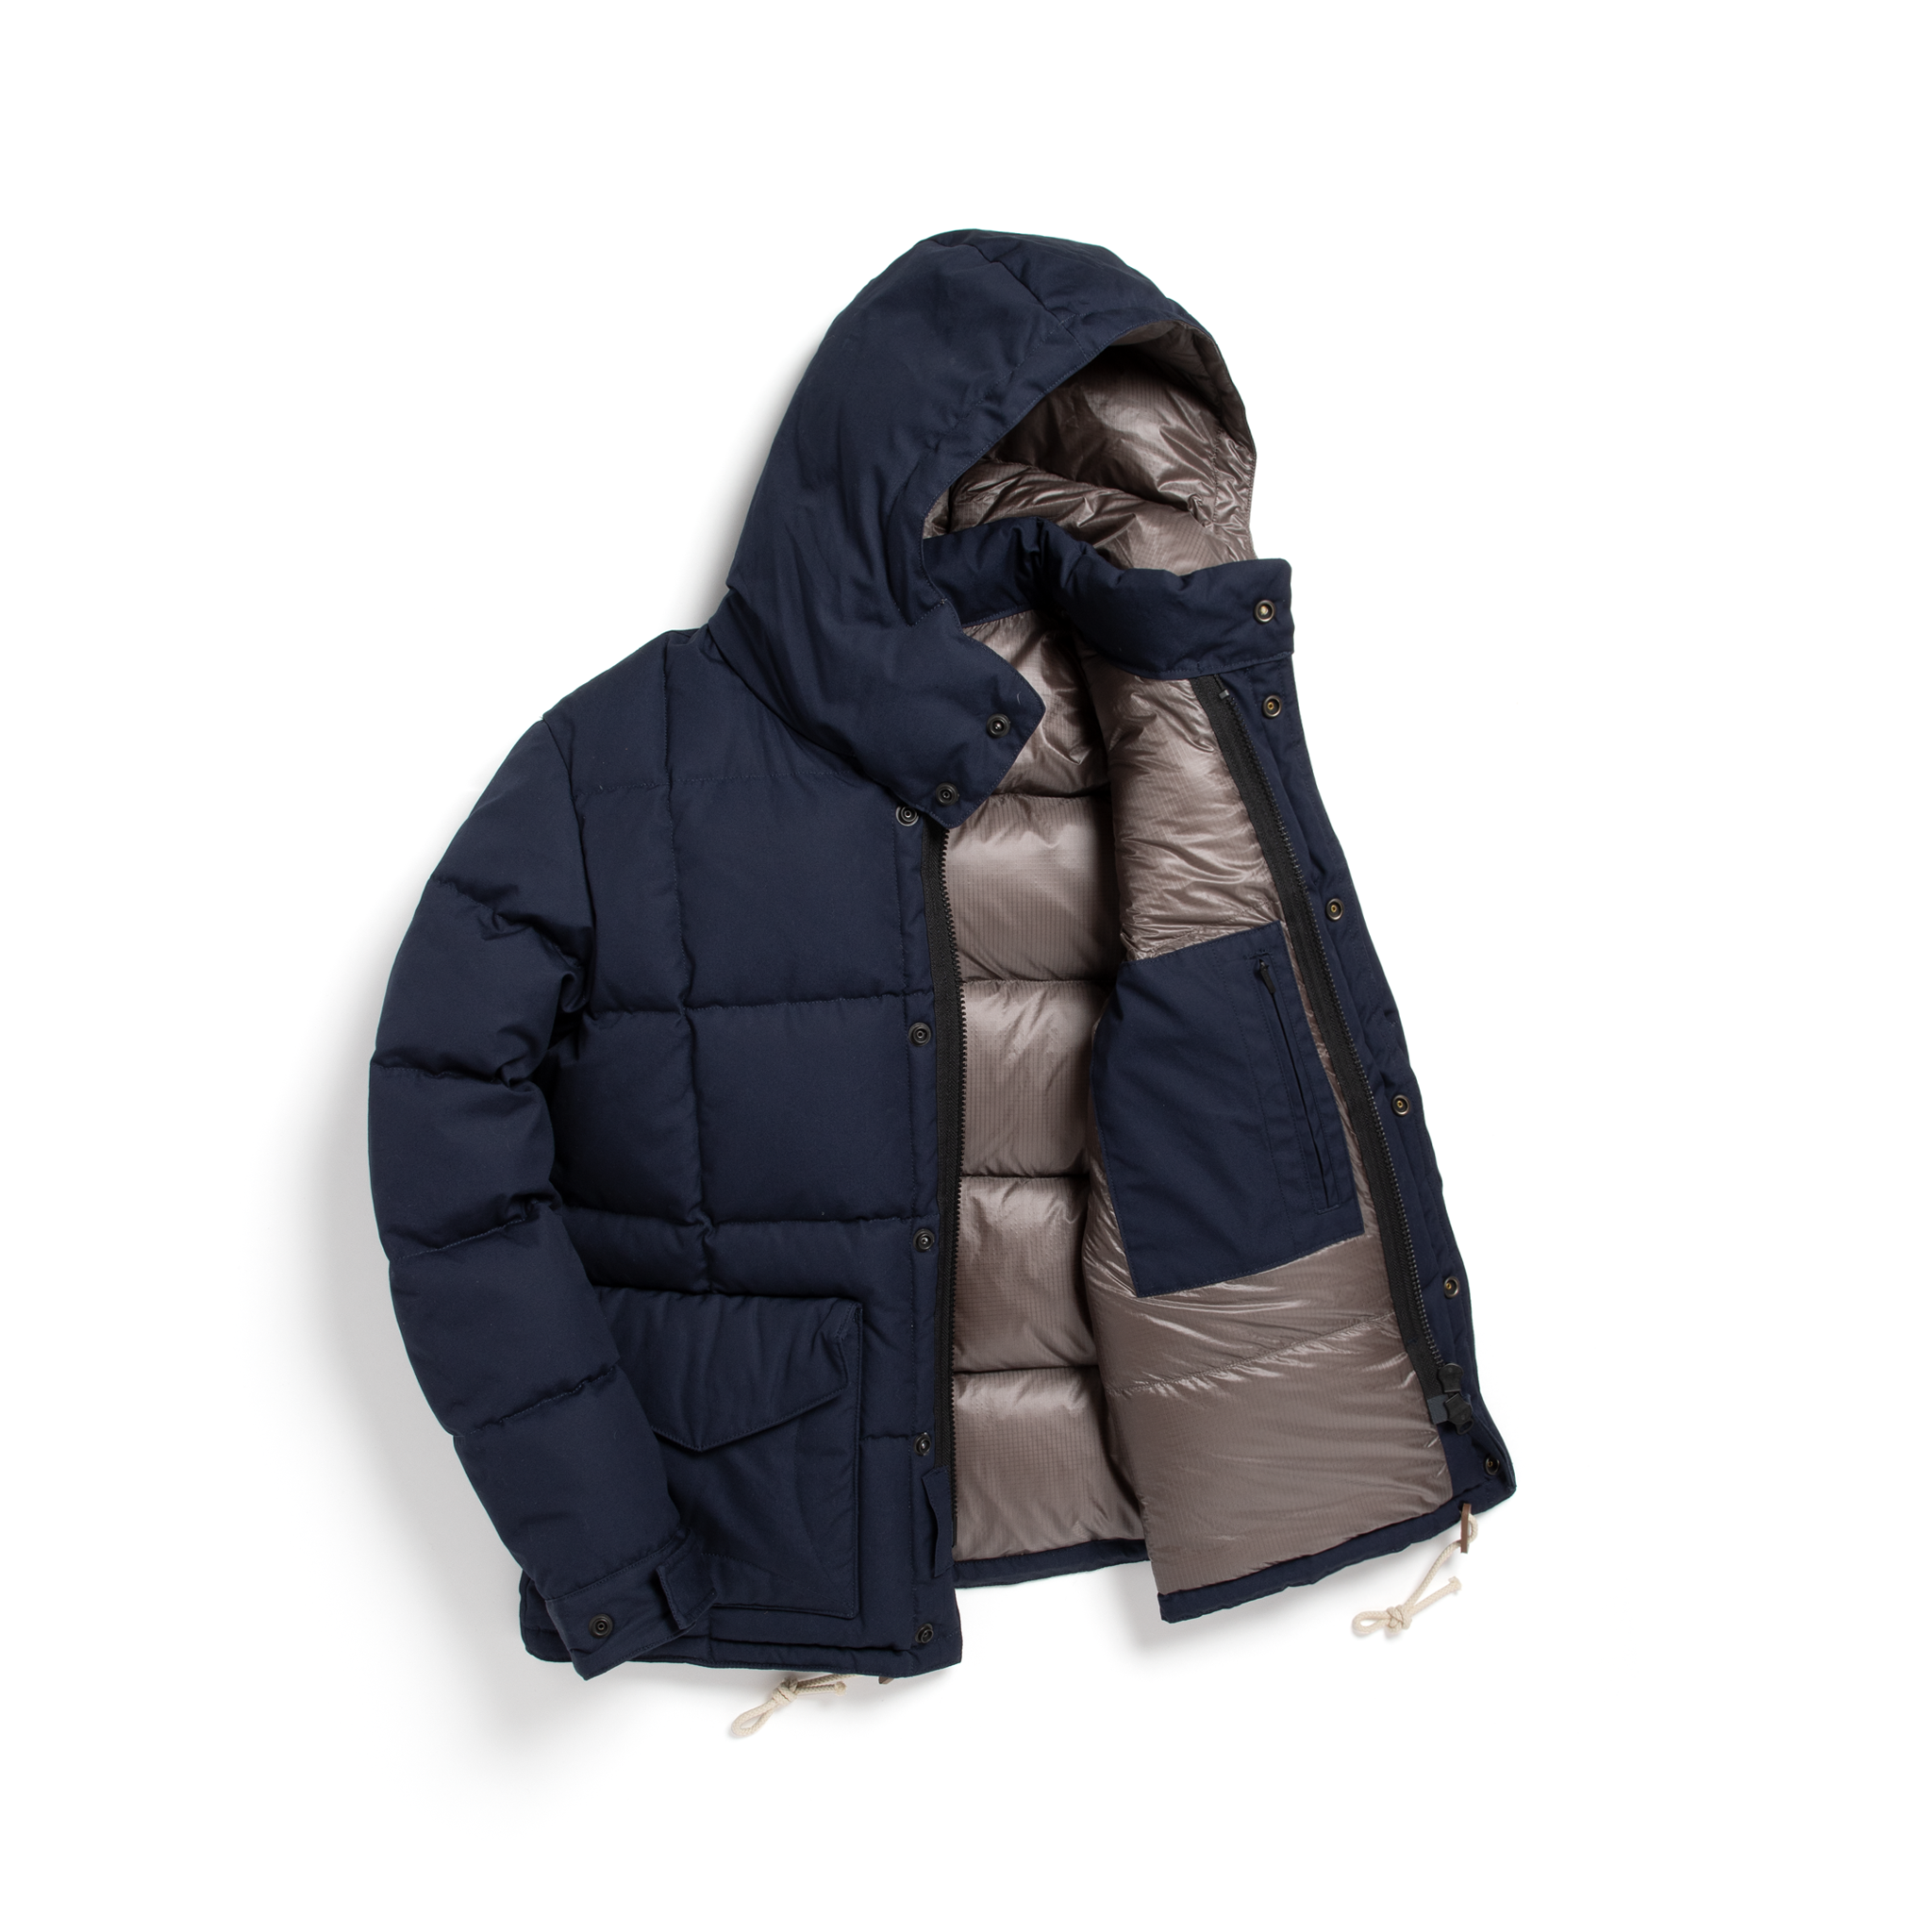 VINTAGE DOWN JACKET - NAVY